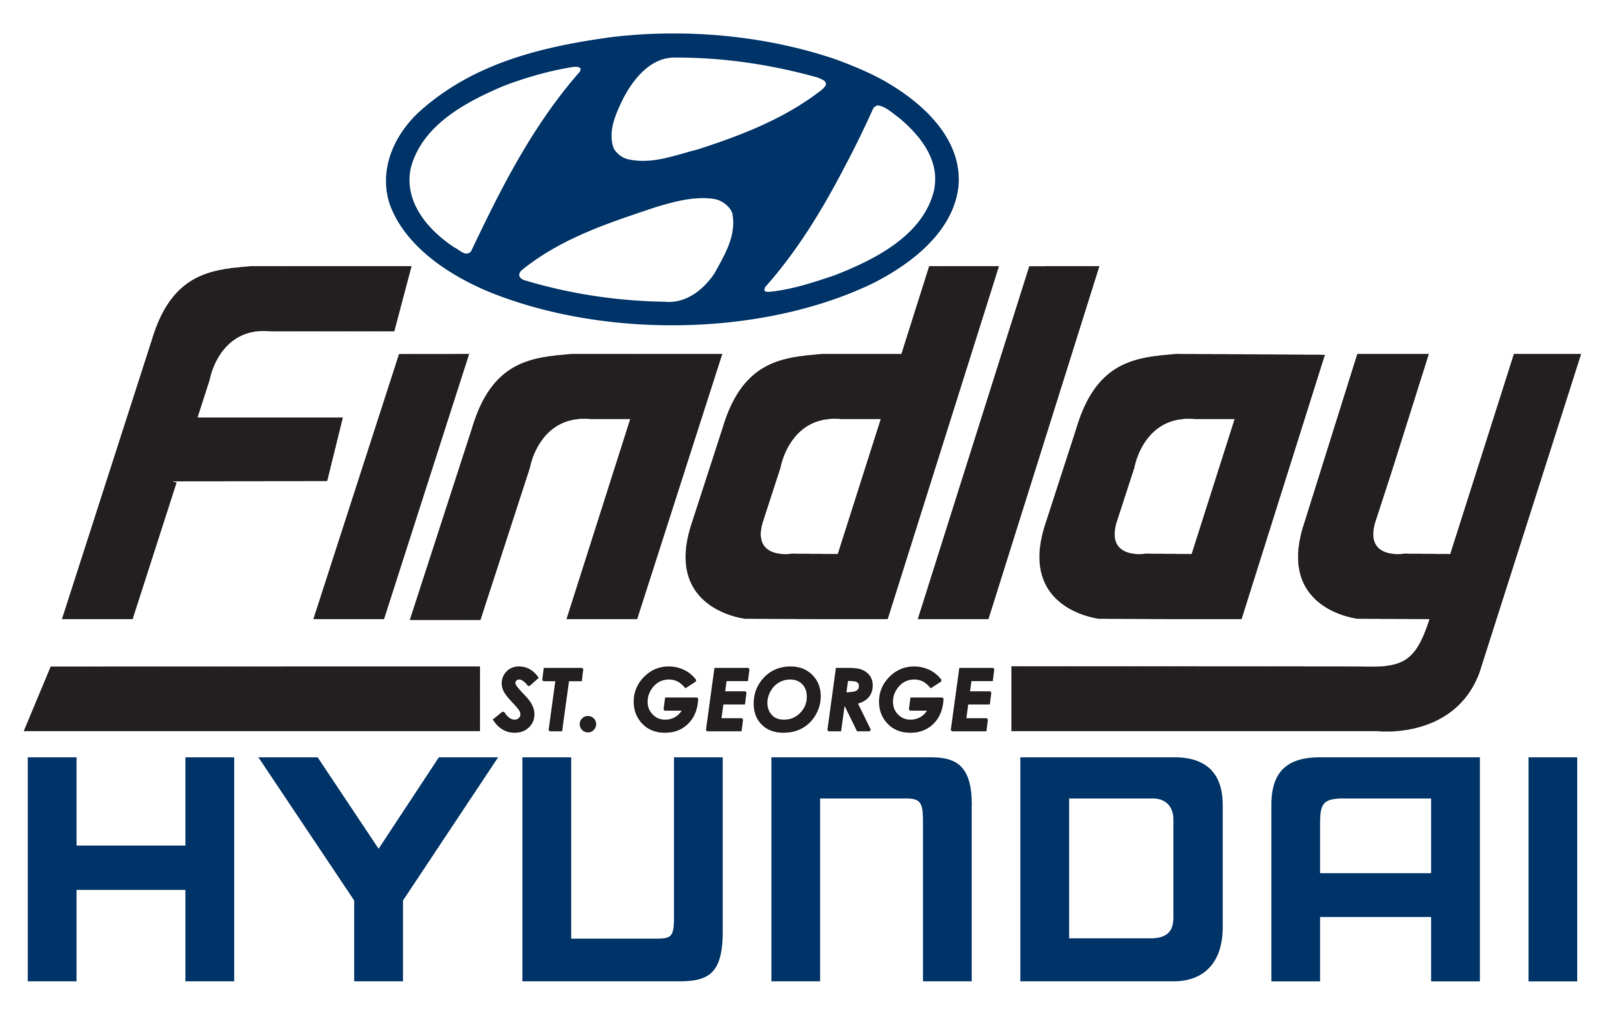 Beautiful Findlay Hyundai   Saint George, UT: Read Consumer Reviews, Browse Used And  New Cars For Sale